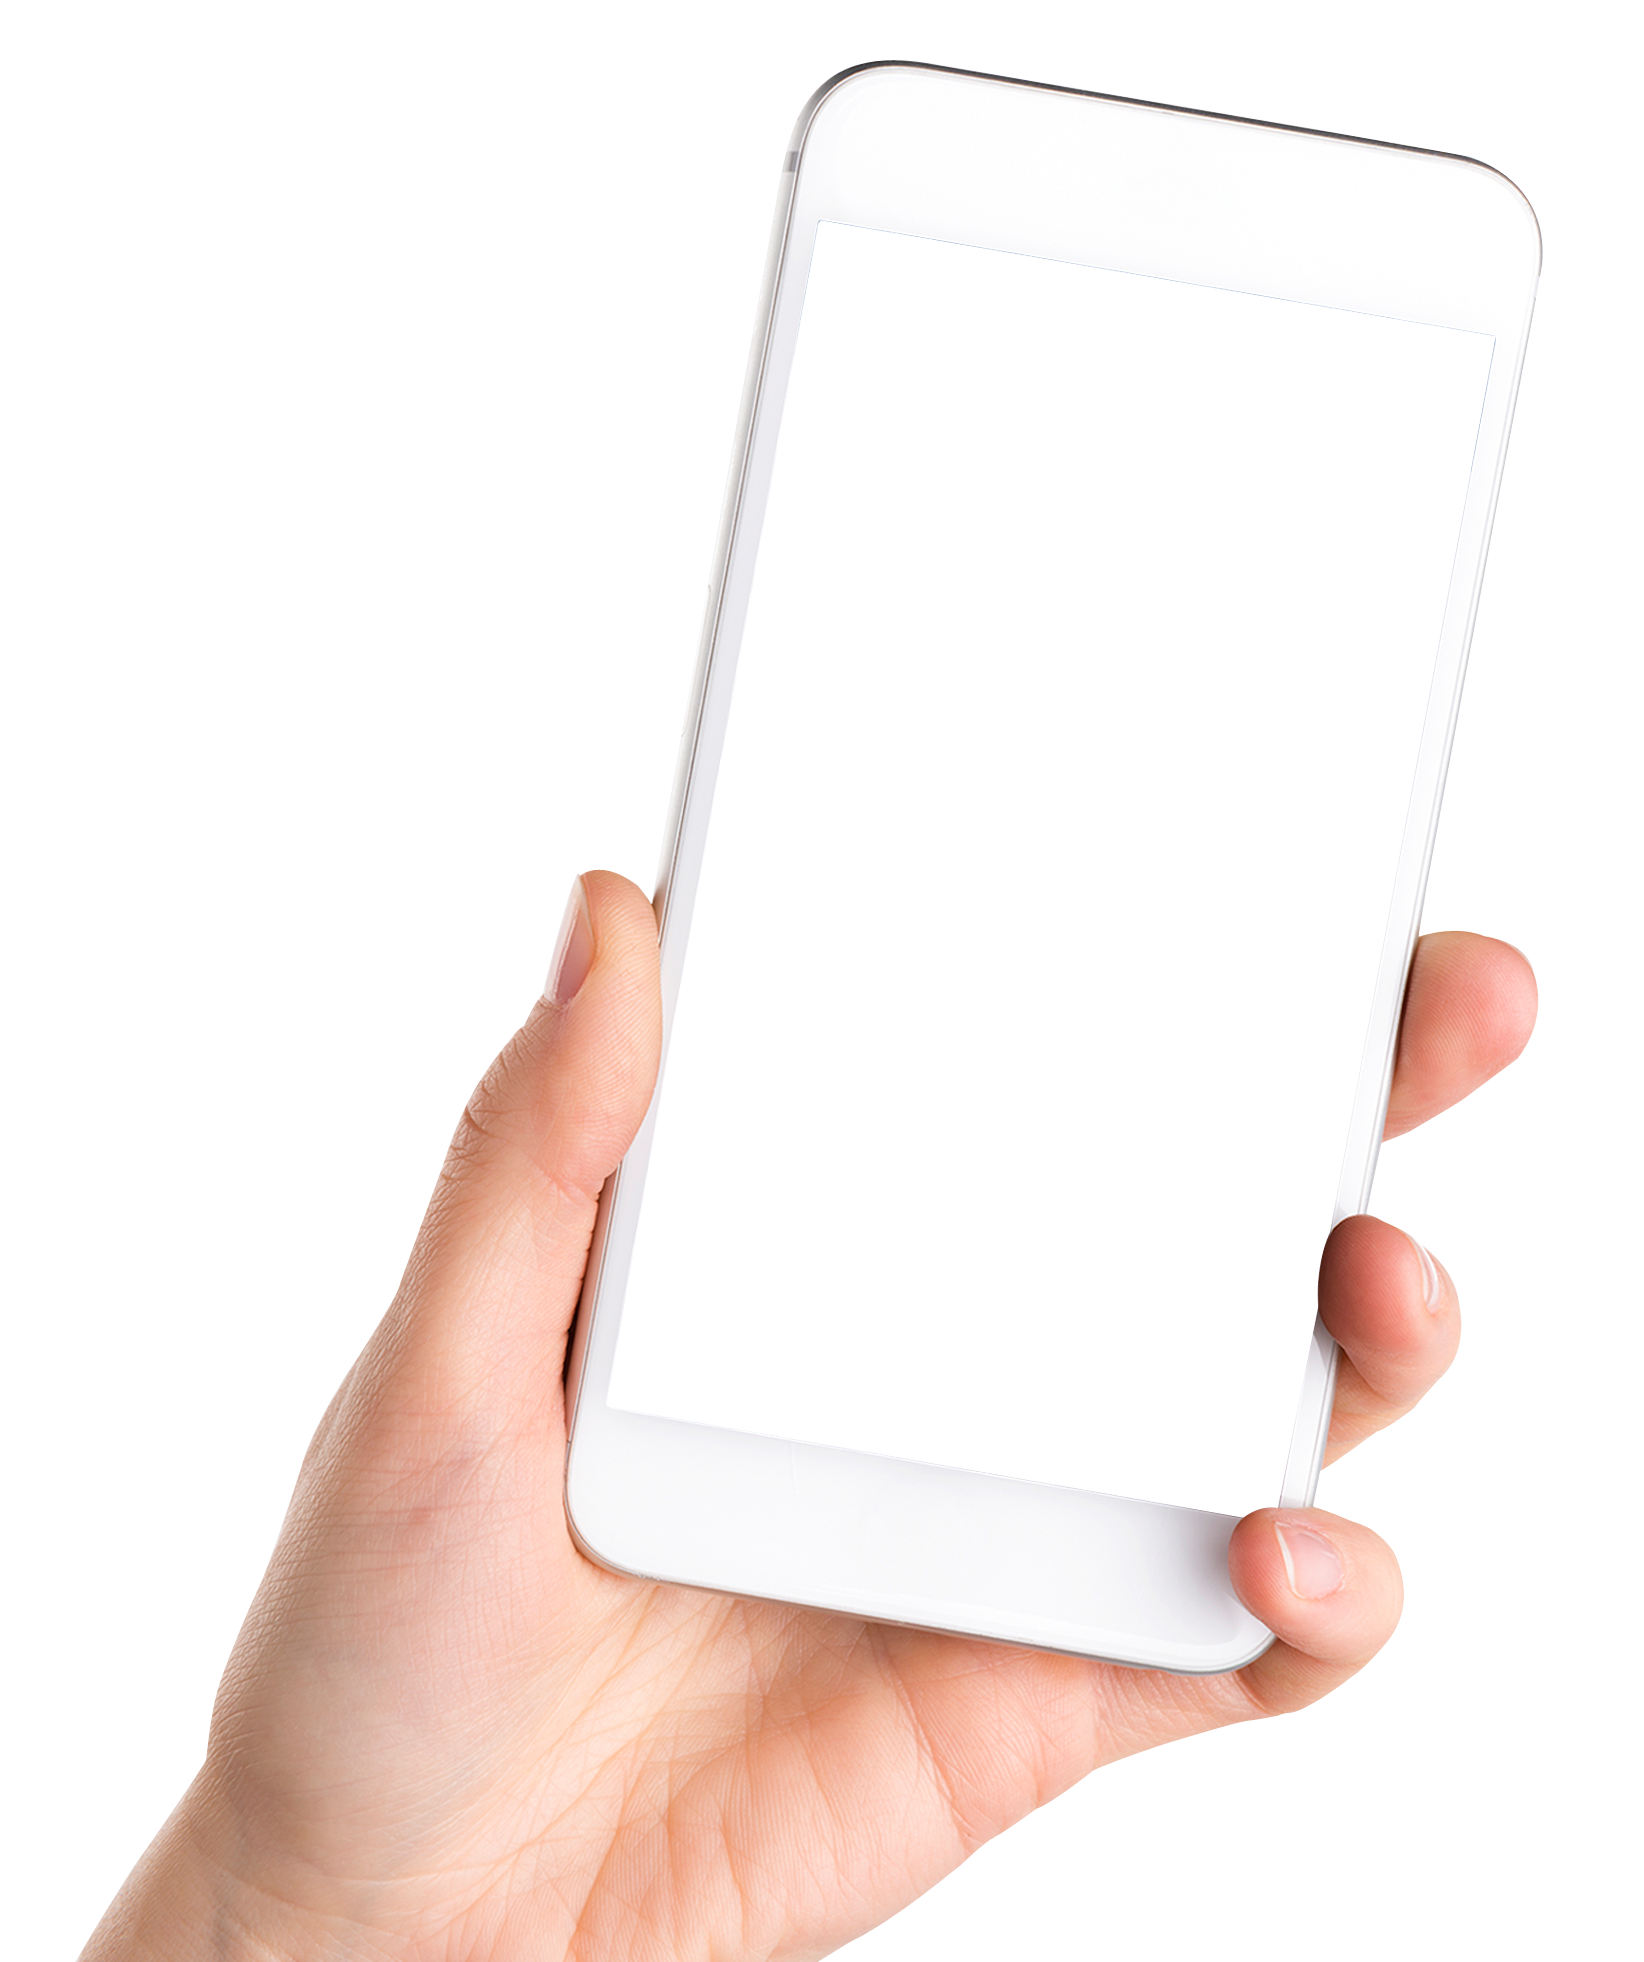 Phone In Hand Png Image Hand Holding Phone Smartphone Art Smartphone Find the perfect hand png stock photos and editorial news pictures from getty images. phone in hand png image hand holding